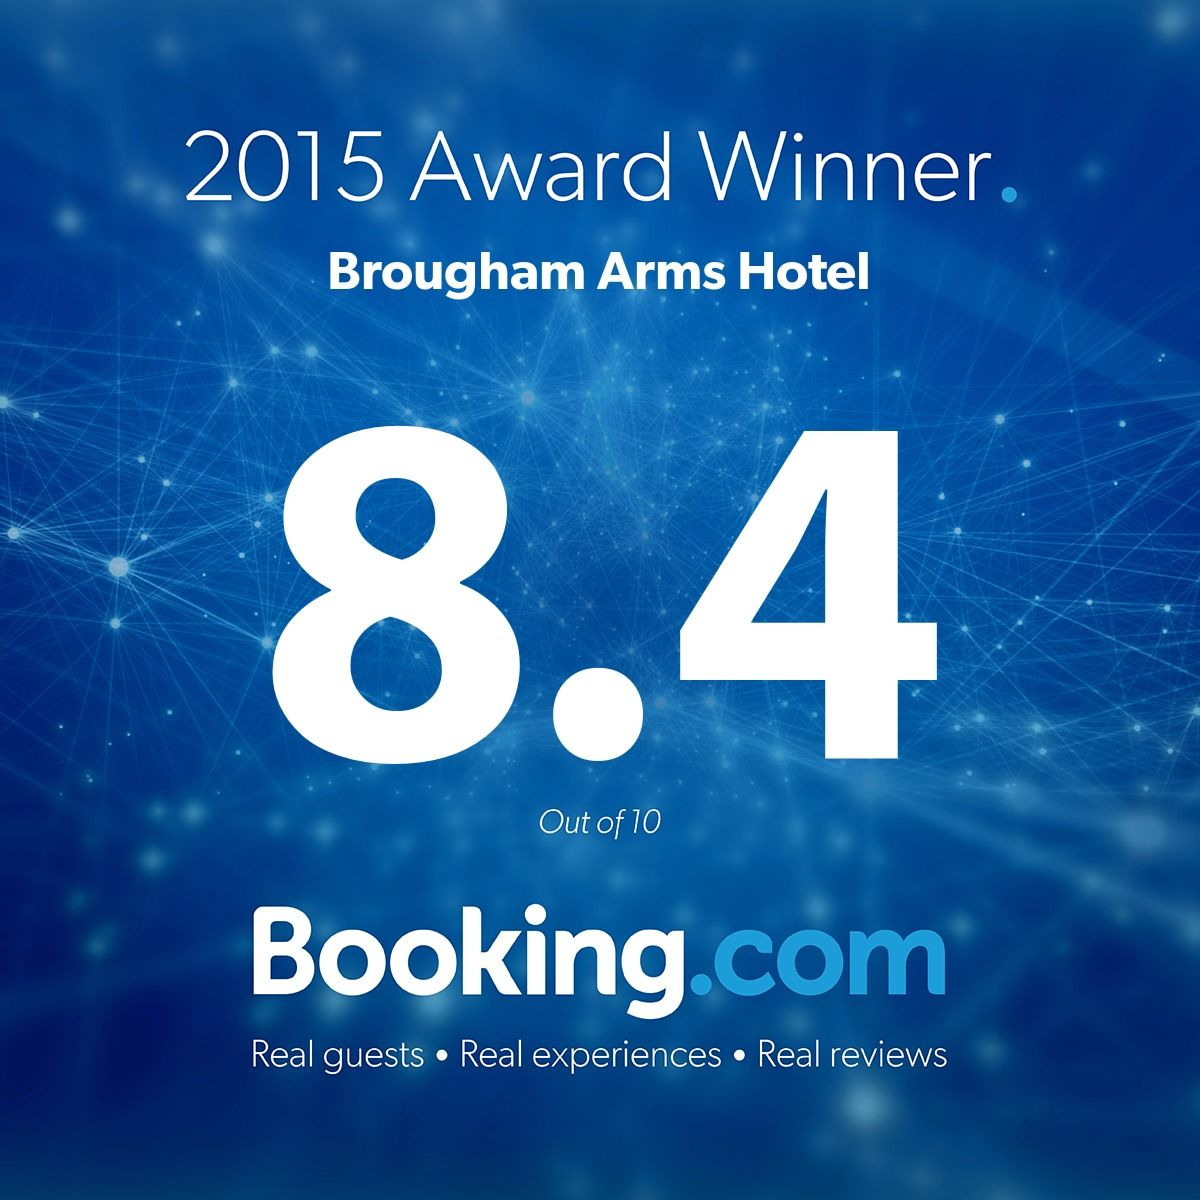 Thanks to all our @bookingcom guests for the great scores! #guestsloveus